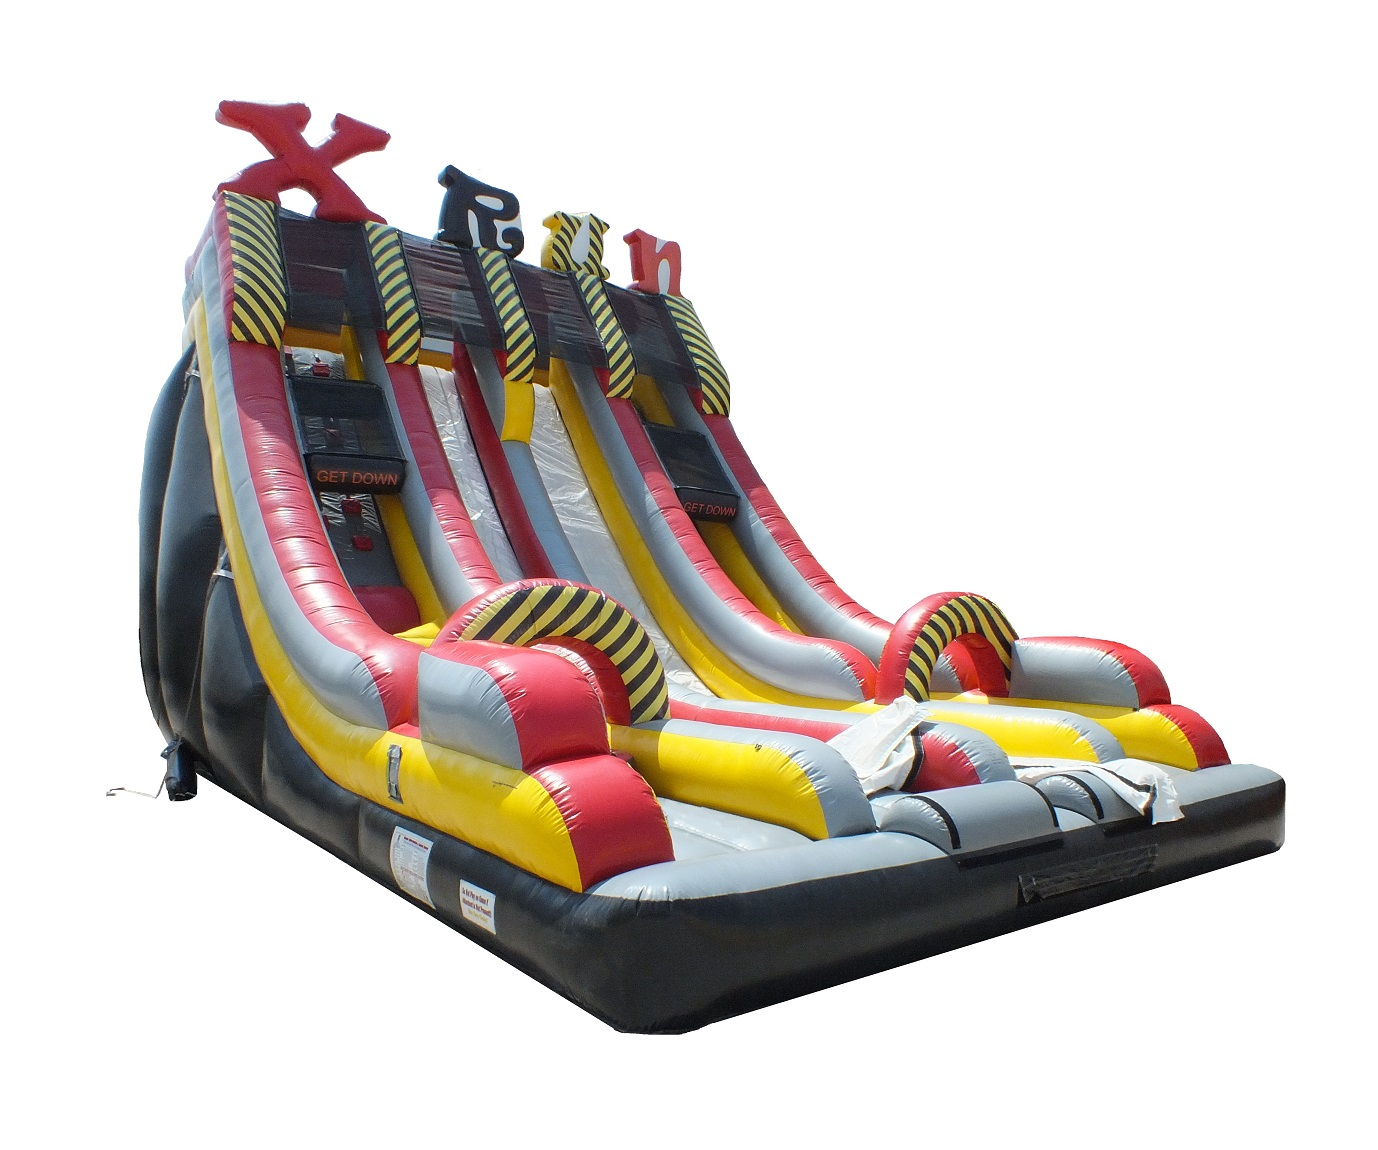 X Run Inflatable Obstacle Course Slide Rental Inflatable